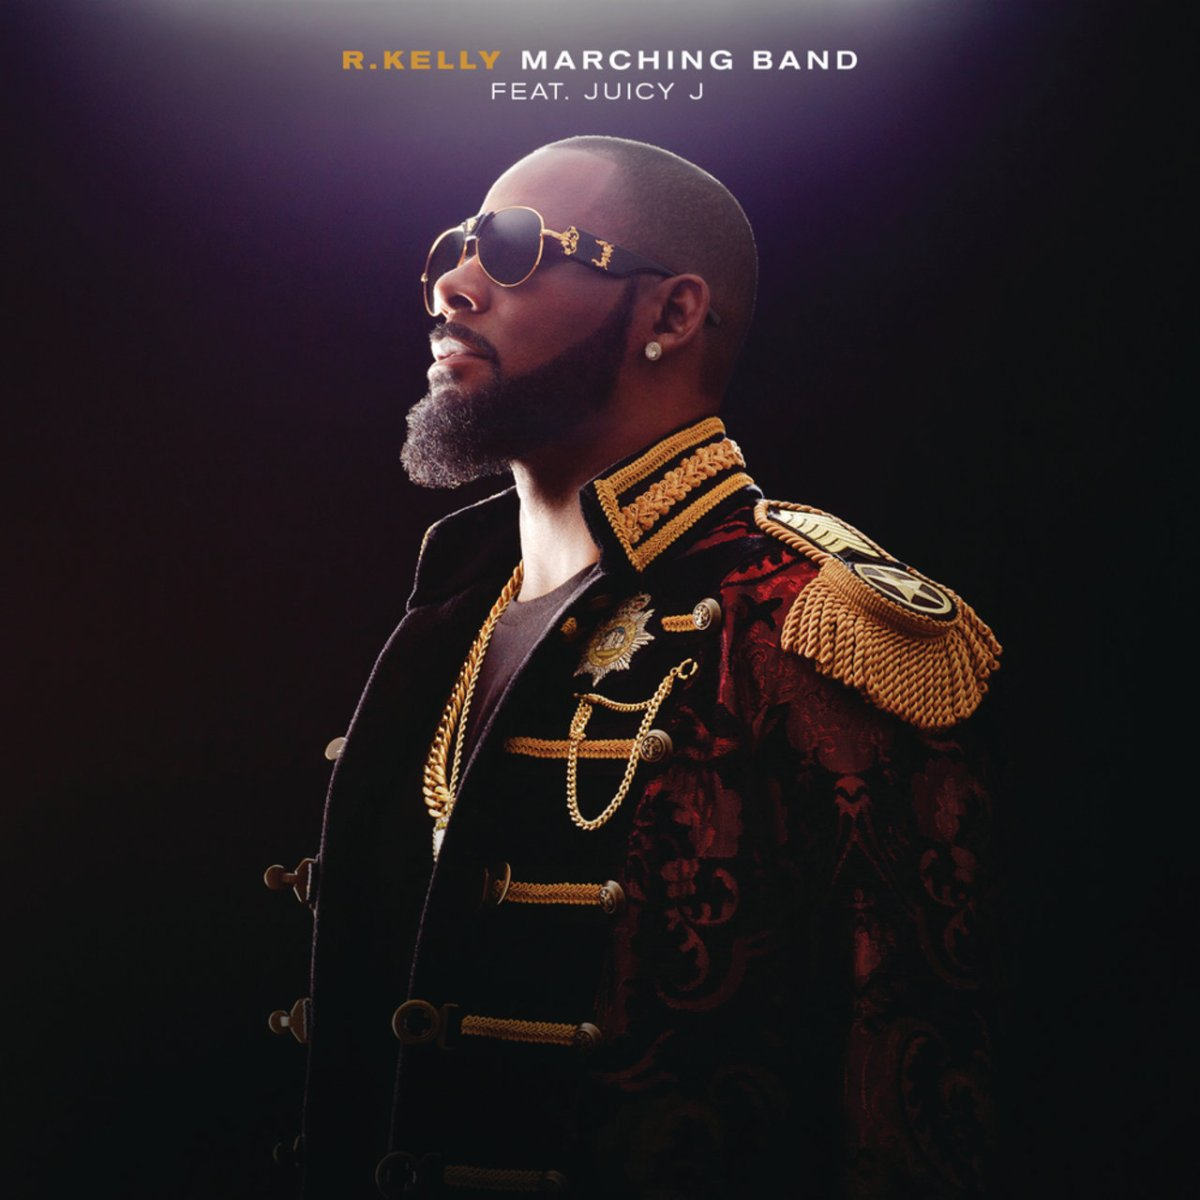 R. Kelly - Marching Band (ft. Juicy J) (Cover)